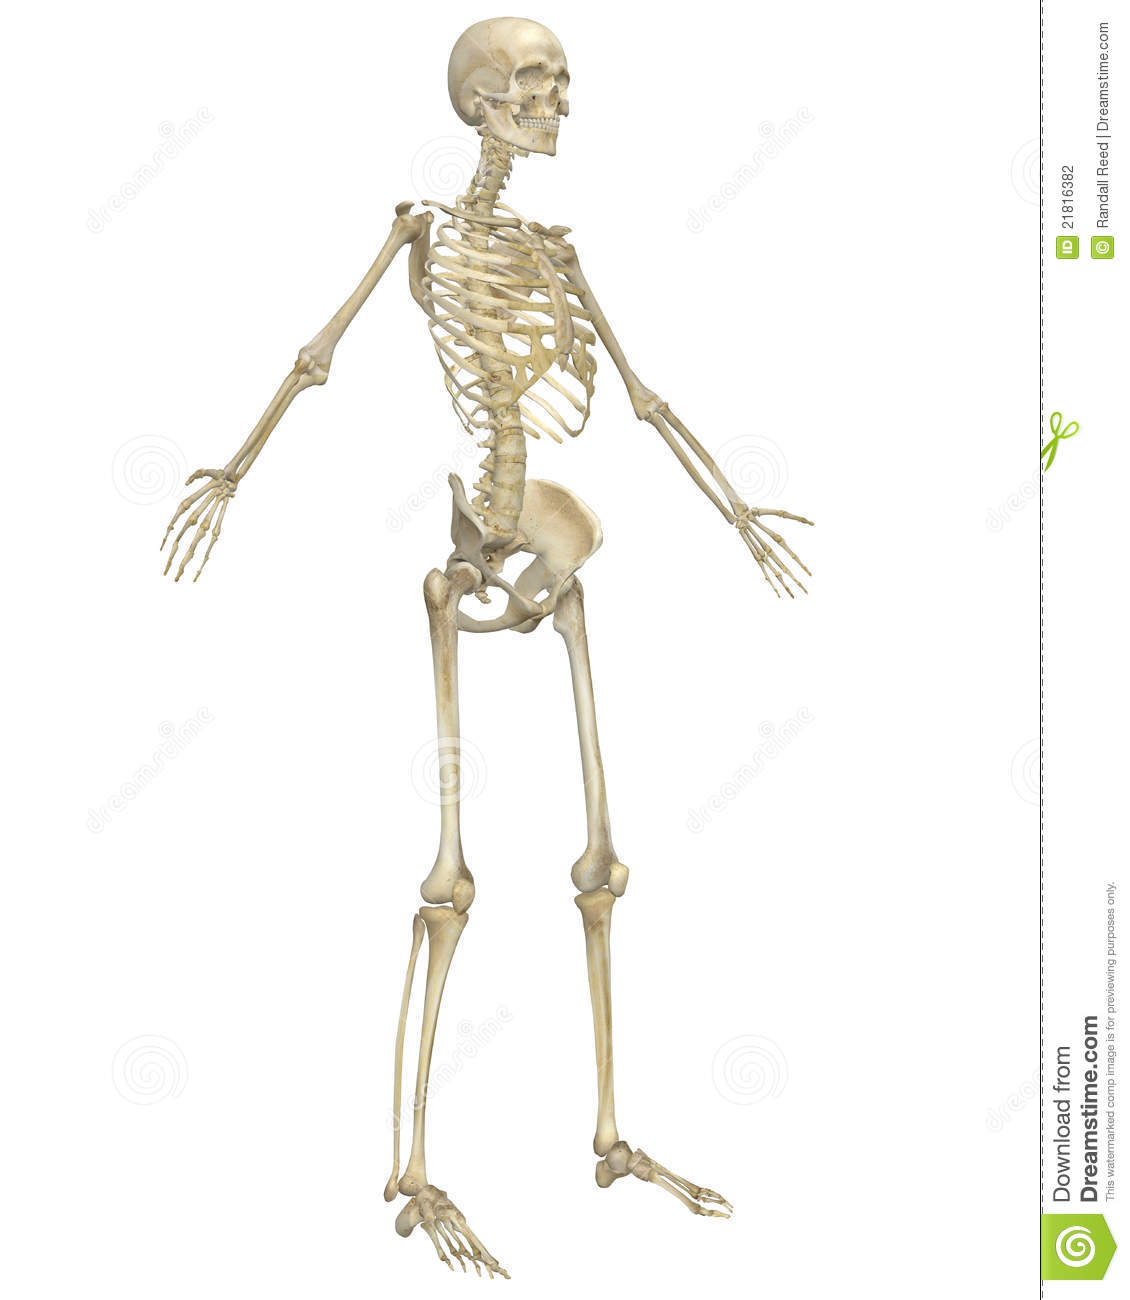 Human Skeleton Anatomy Angled Front View Stock Photography